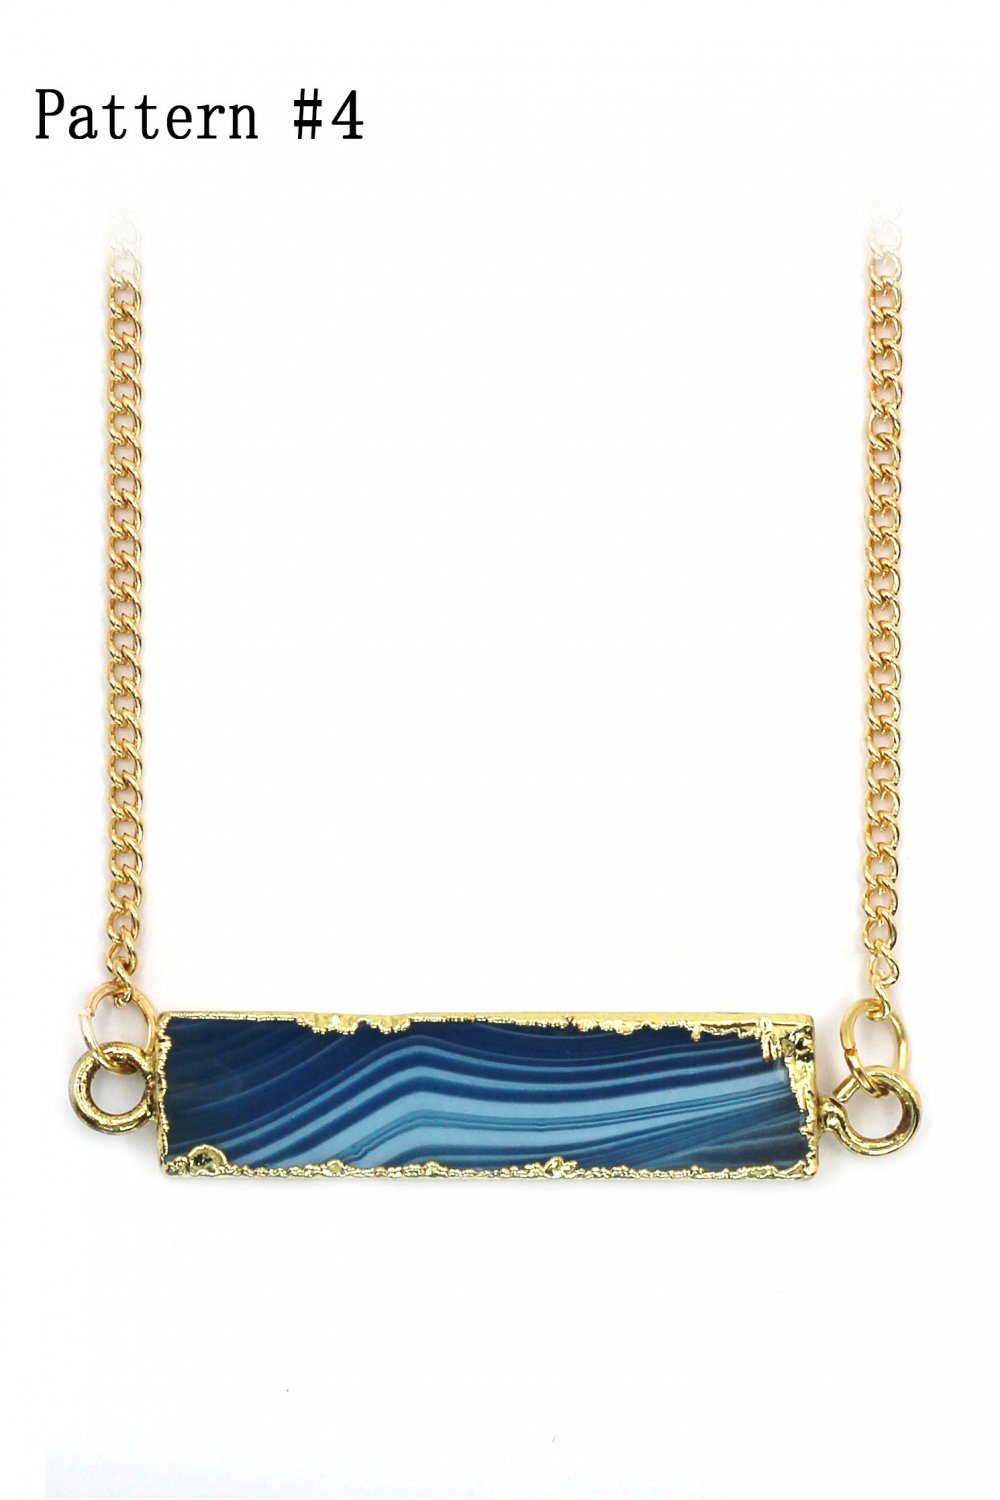 Fashion natural stone golden necklace Pattern #4